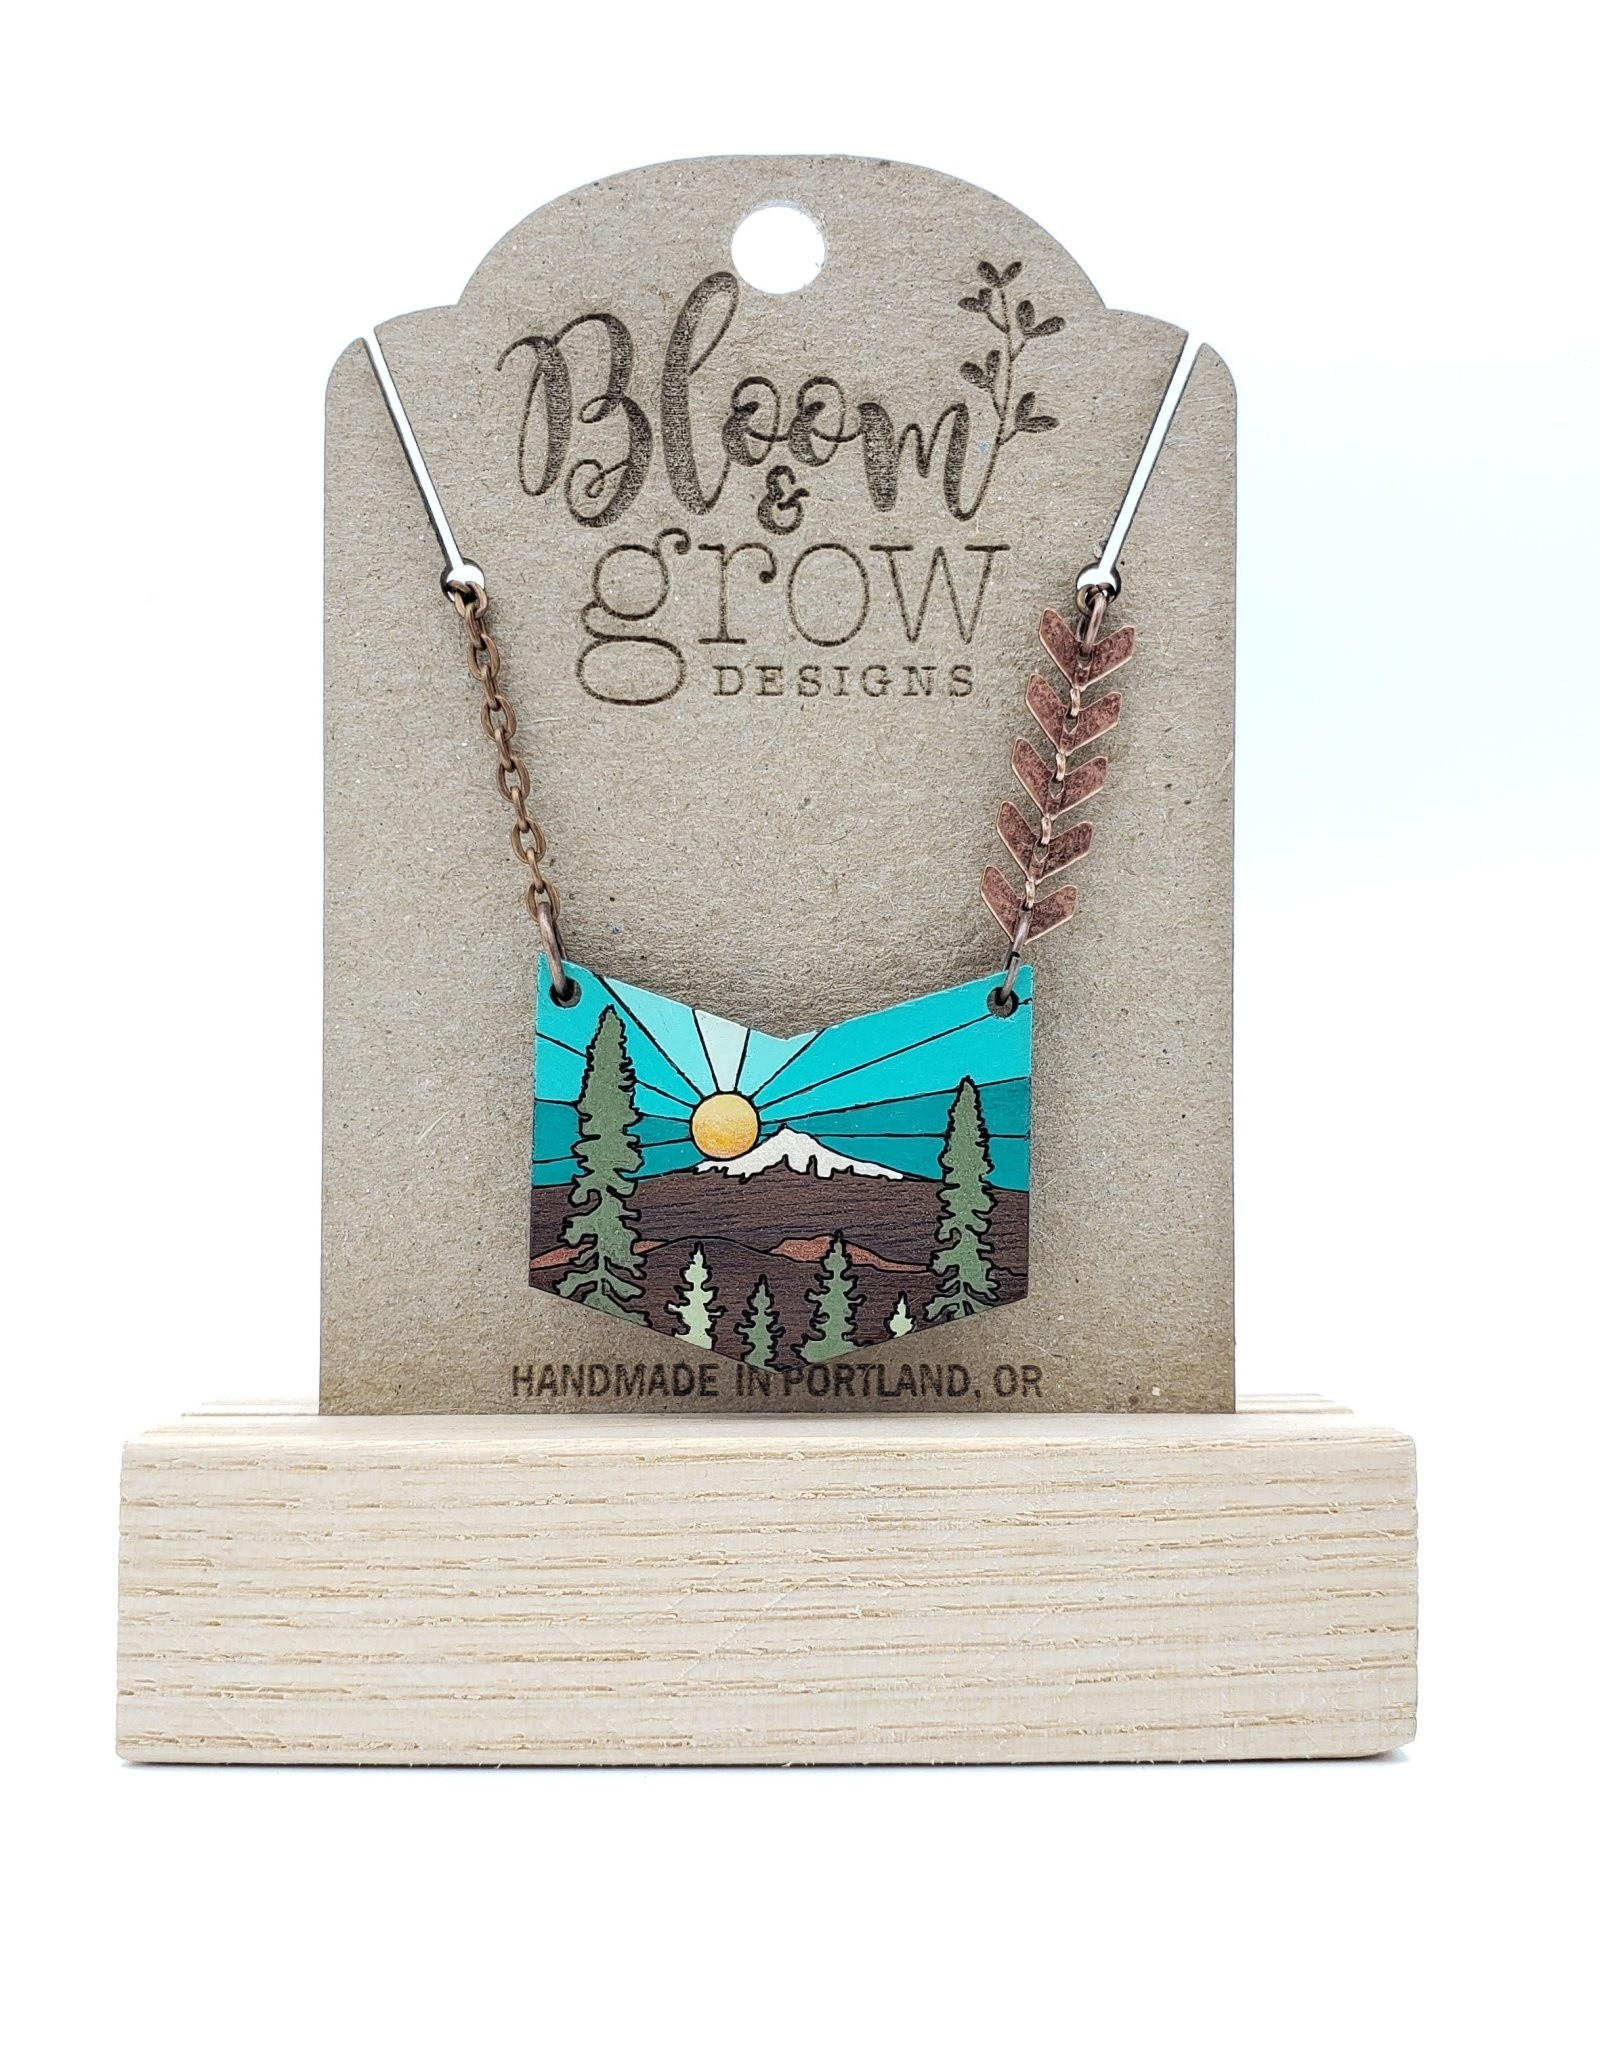 Bloom & Grow Designs Snowcapped Chevron Necklace Sun, Mountain, Forest - Handpainted Wood